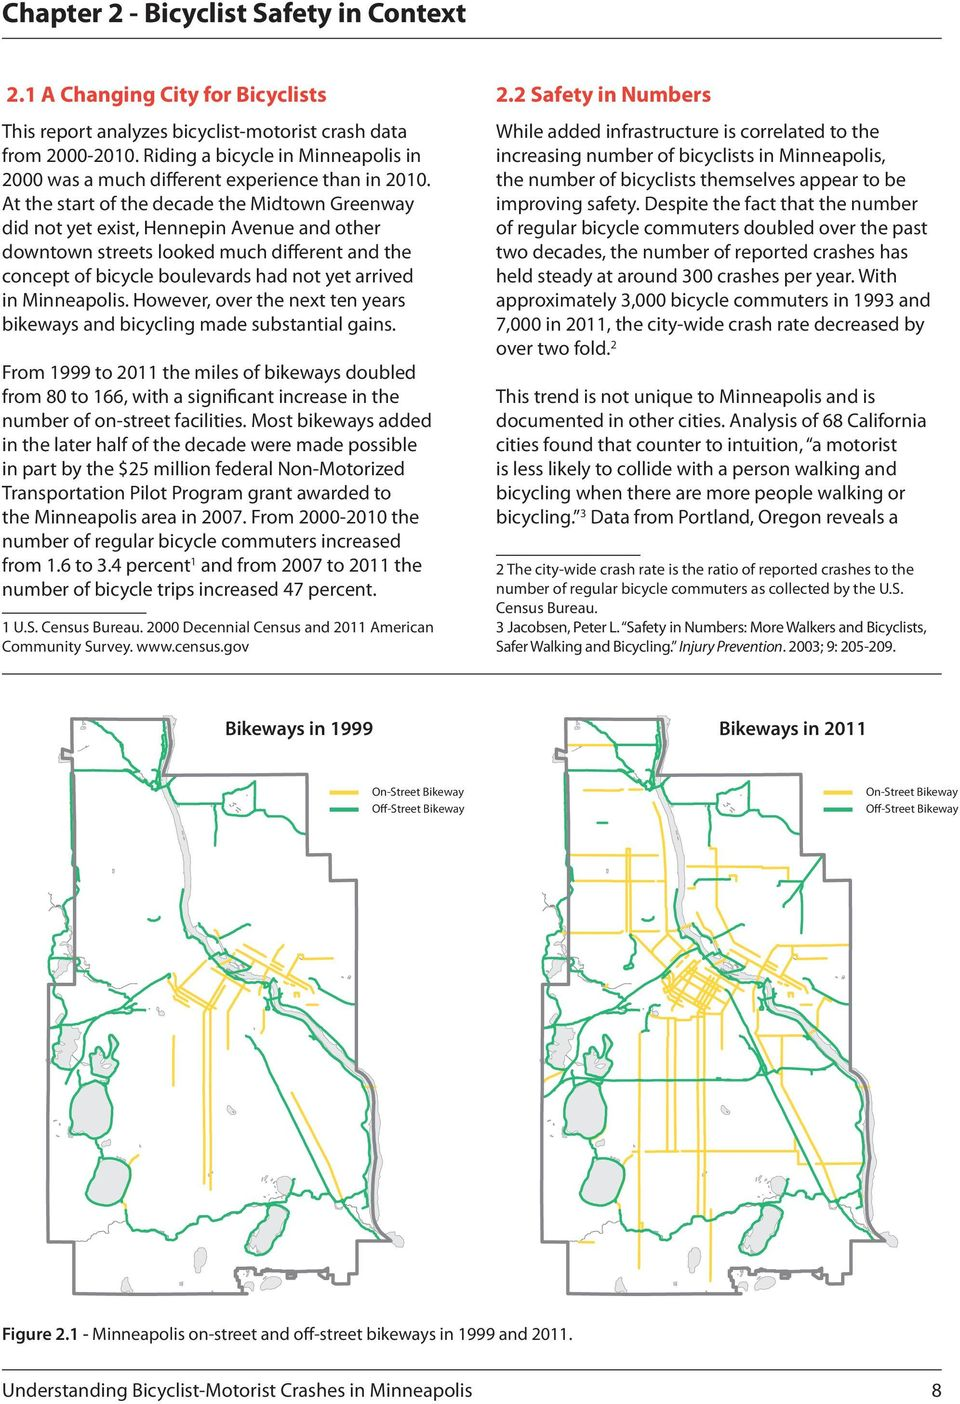 At the start of the decade the Midtown Greenway did not yet exist, Hennepin Avenue and other downtown streets looked much different and the concept of bicycle boulevards had not yet arrived in